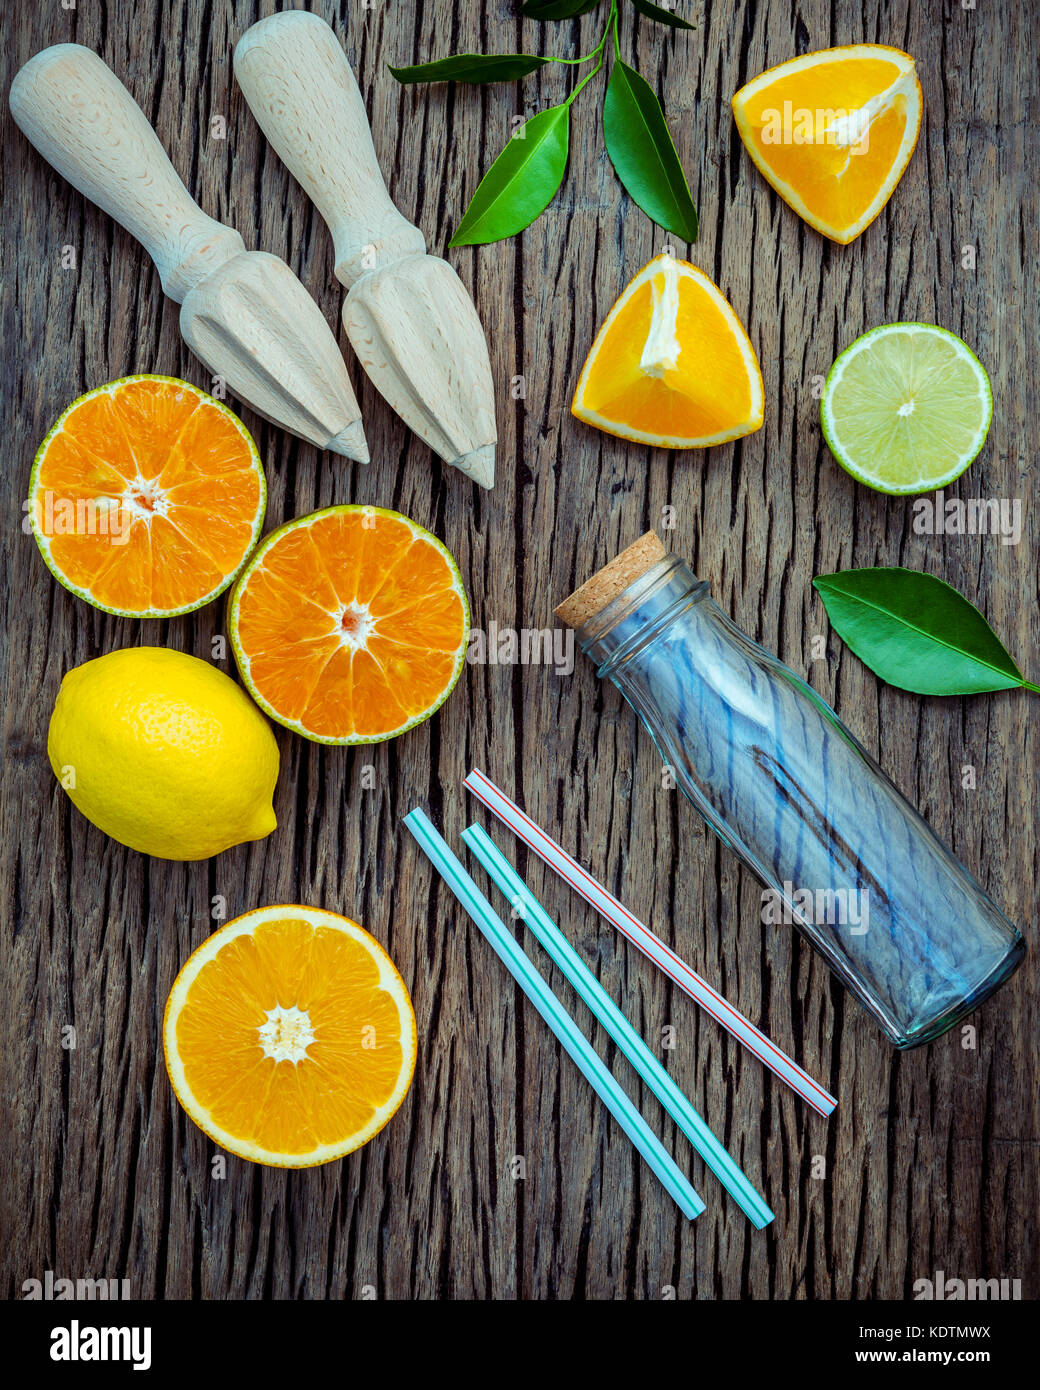 juice with juicer and glass bottle .Fresh lemons, lime and oranges set up on shabby wooden table with flat lay. - Stock Image